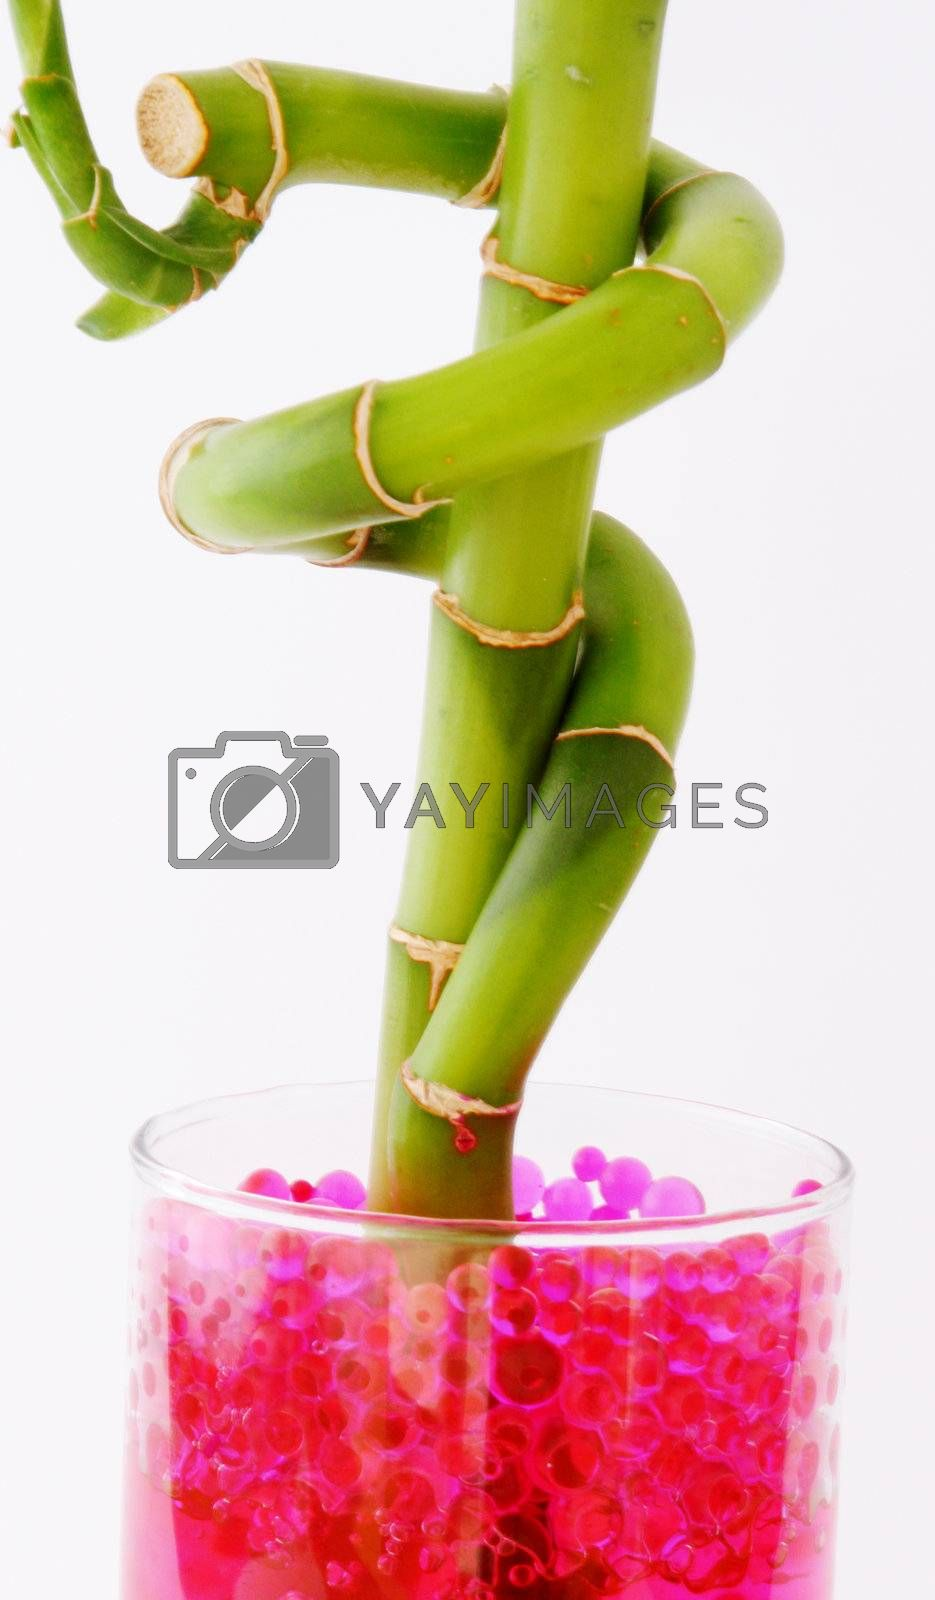 natural plant colors with green and fuchsia on white background